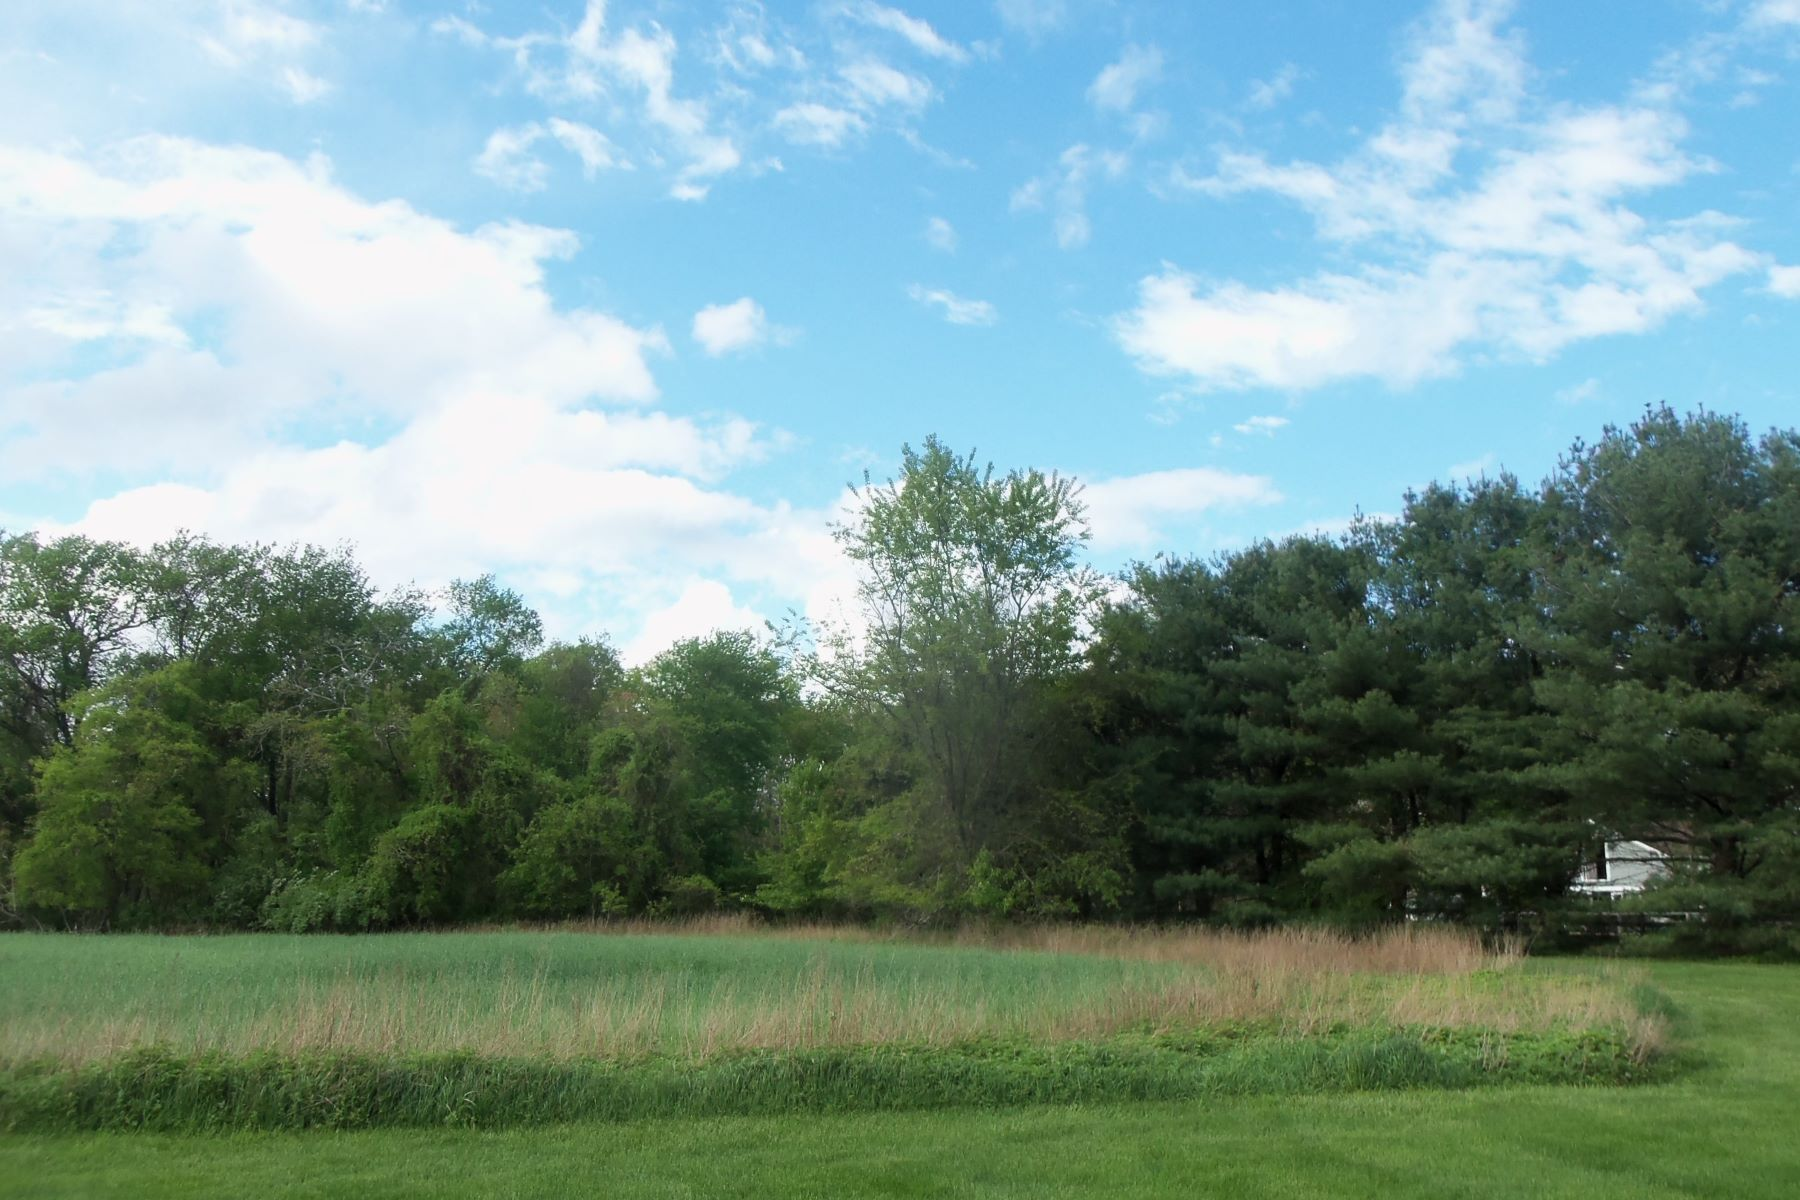 Terrain pour l Vente à Cleared 23.3 Acre Site Bordering Colts Neck 0 Yellowbrook Rd Marlboro, New Jersey 07746 États-Unis